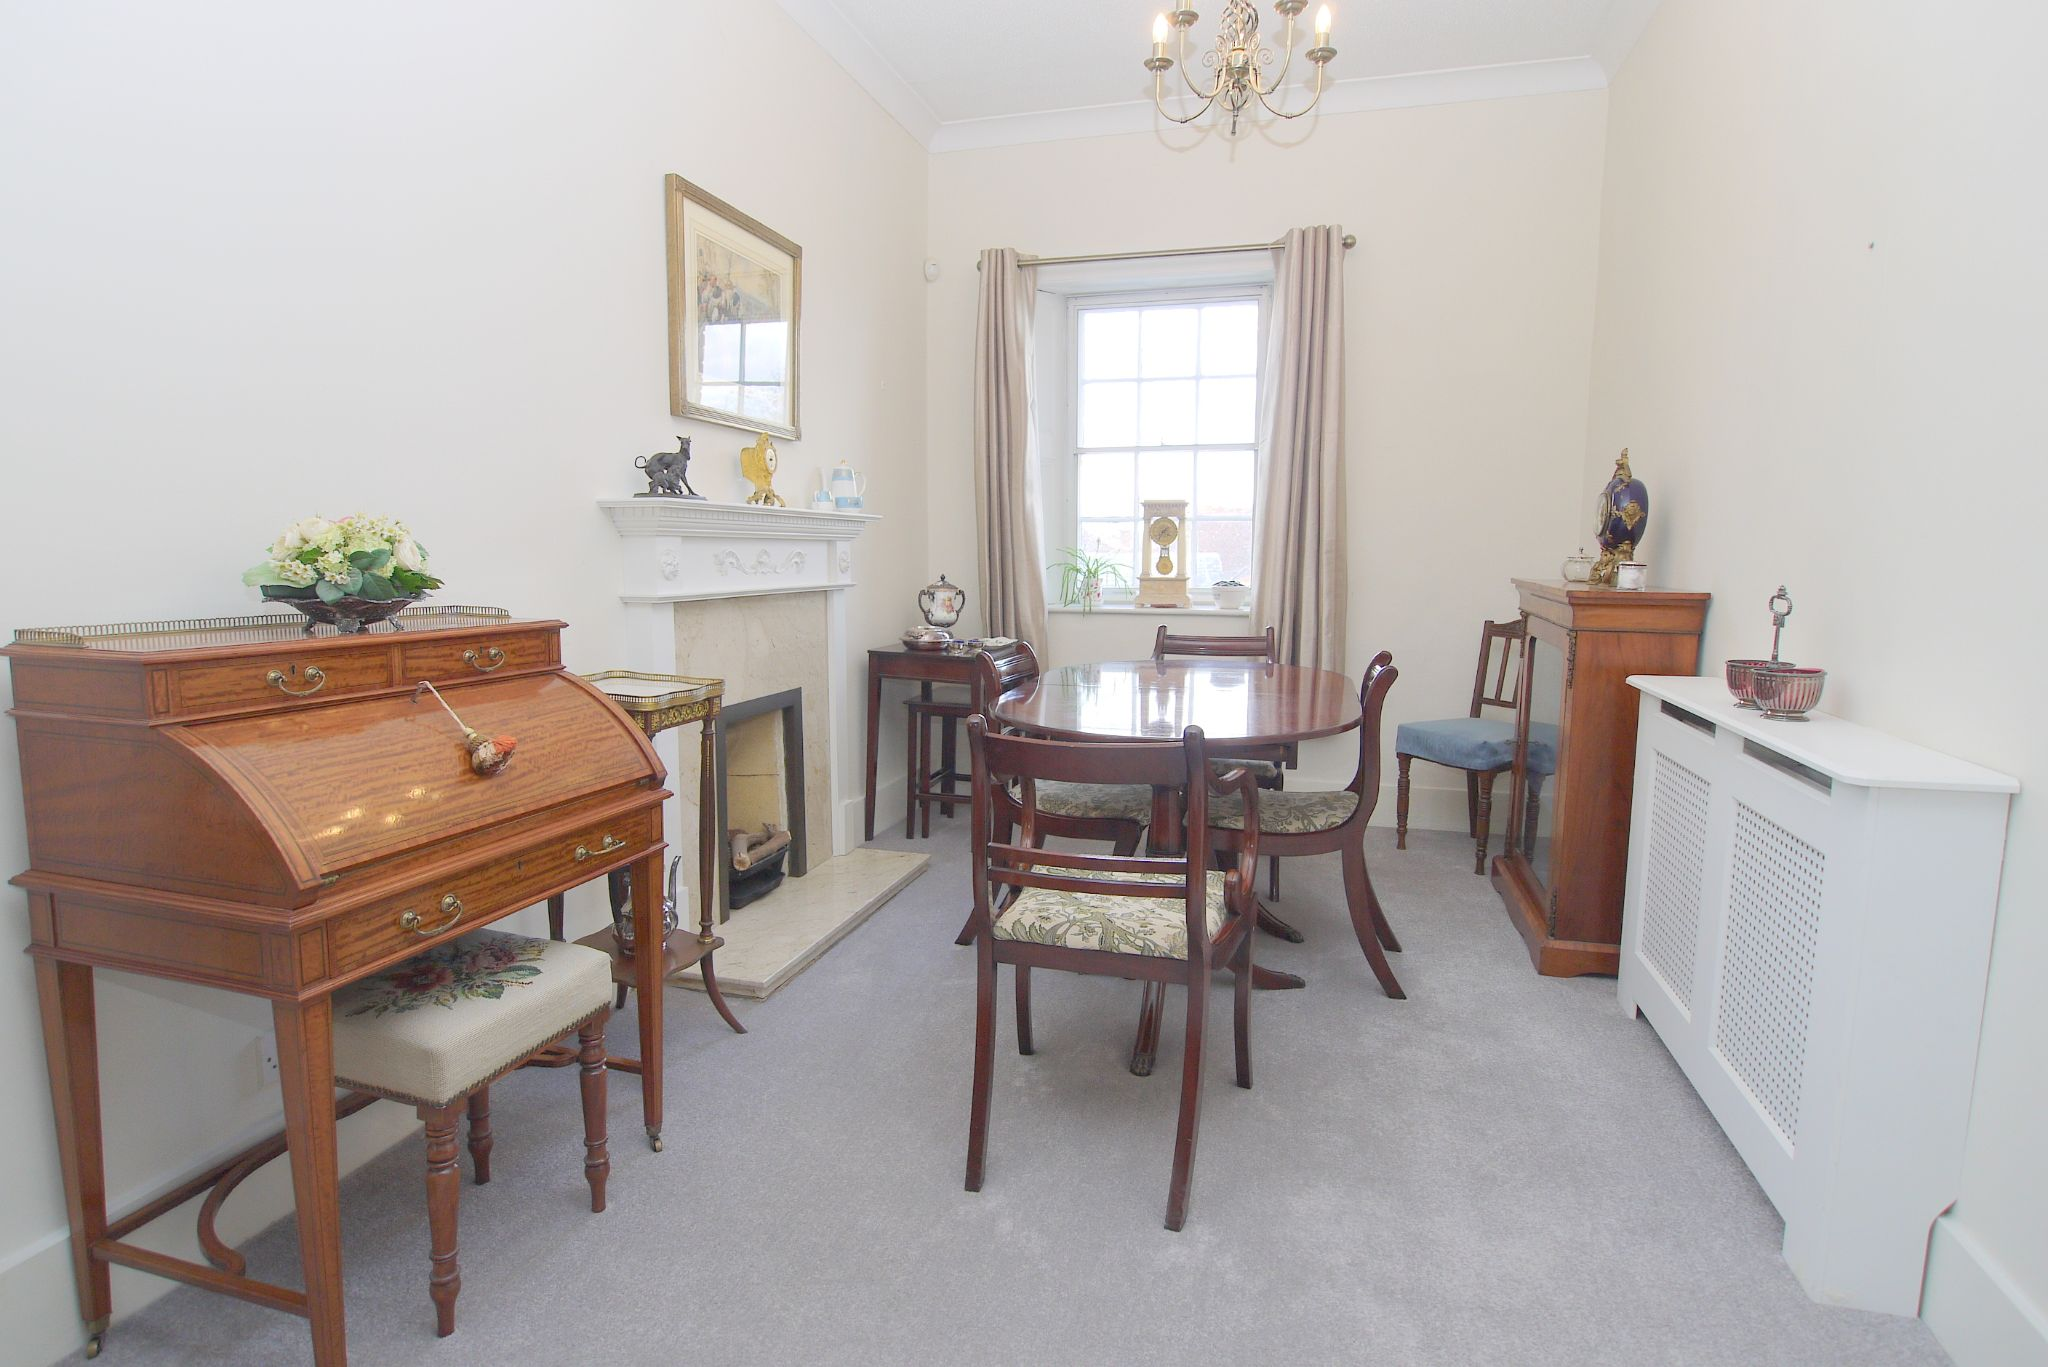 3 bedroom apartment For Sale in Sevenoaks - Property photograph